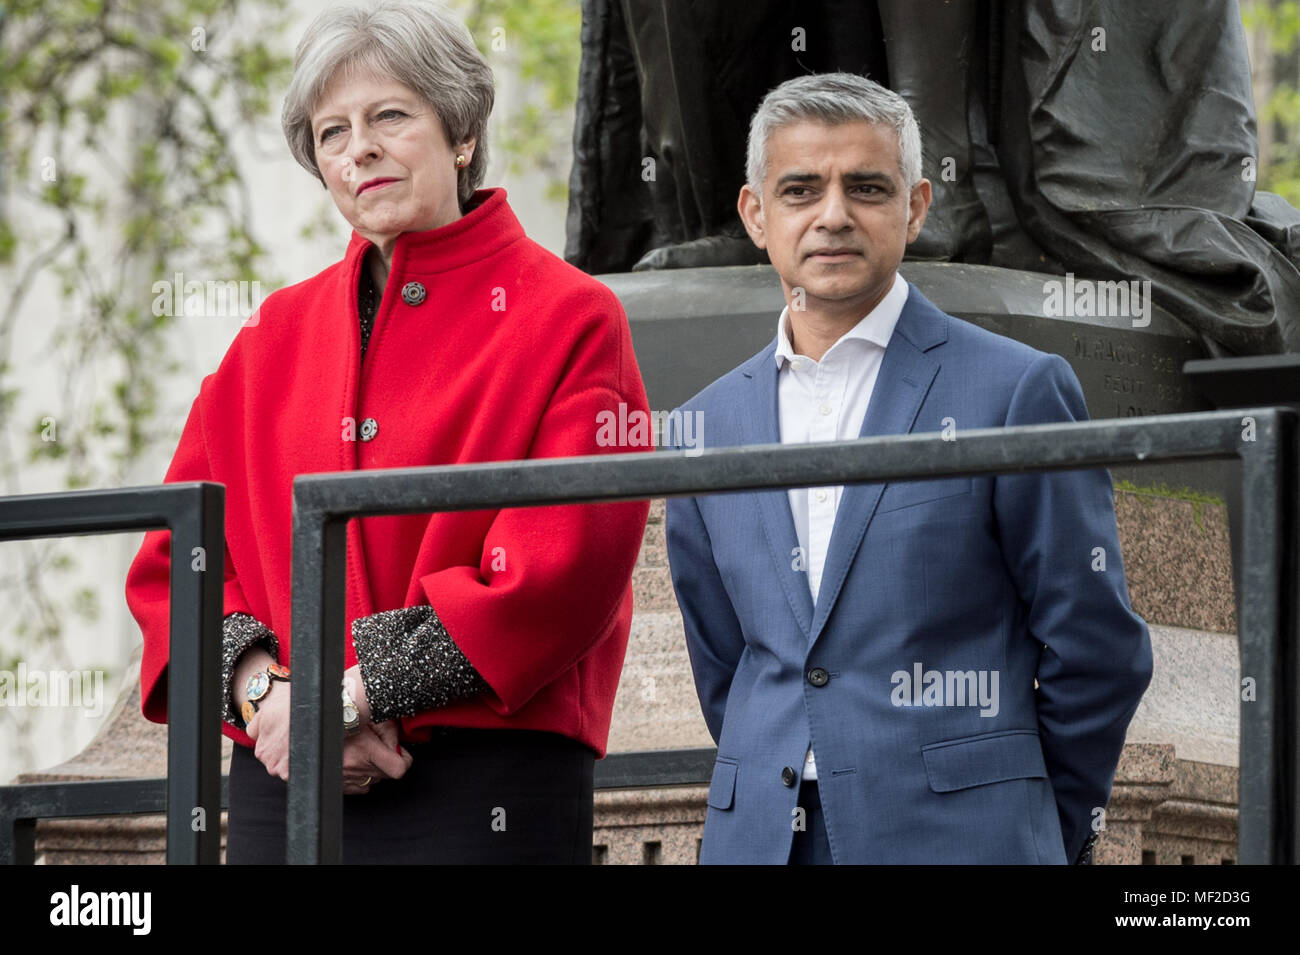 London, UK. 24th April, 2018. Theresa May and Sadiq Khan during the unveiling ceremony of Millicent Fawcett in Parliament Square. The first statue of a woman in Parliament Square joins the line-up of male figures to mark the centenary of women's suffrage in Britain - two years after the campaign to get female representation outside the Palace of Westminster began. Credit: Guy Corbishley/Alamy Live News - Stock Image